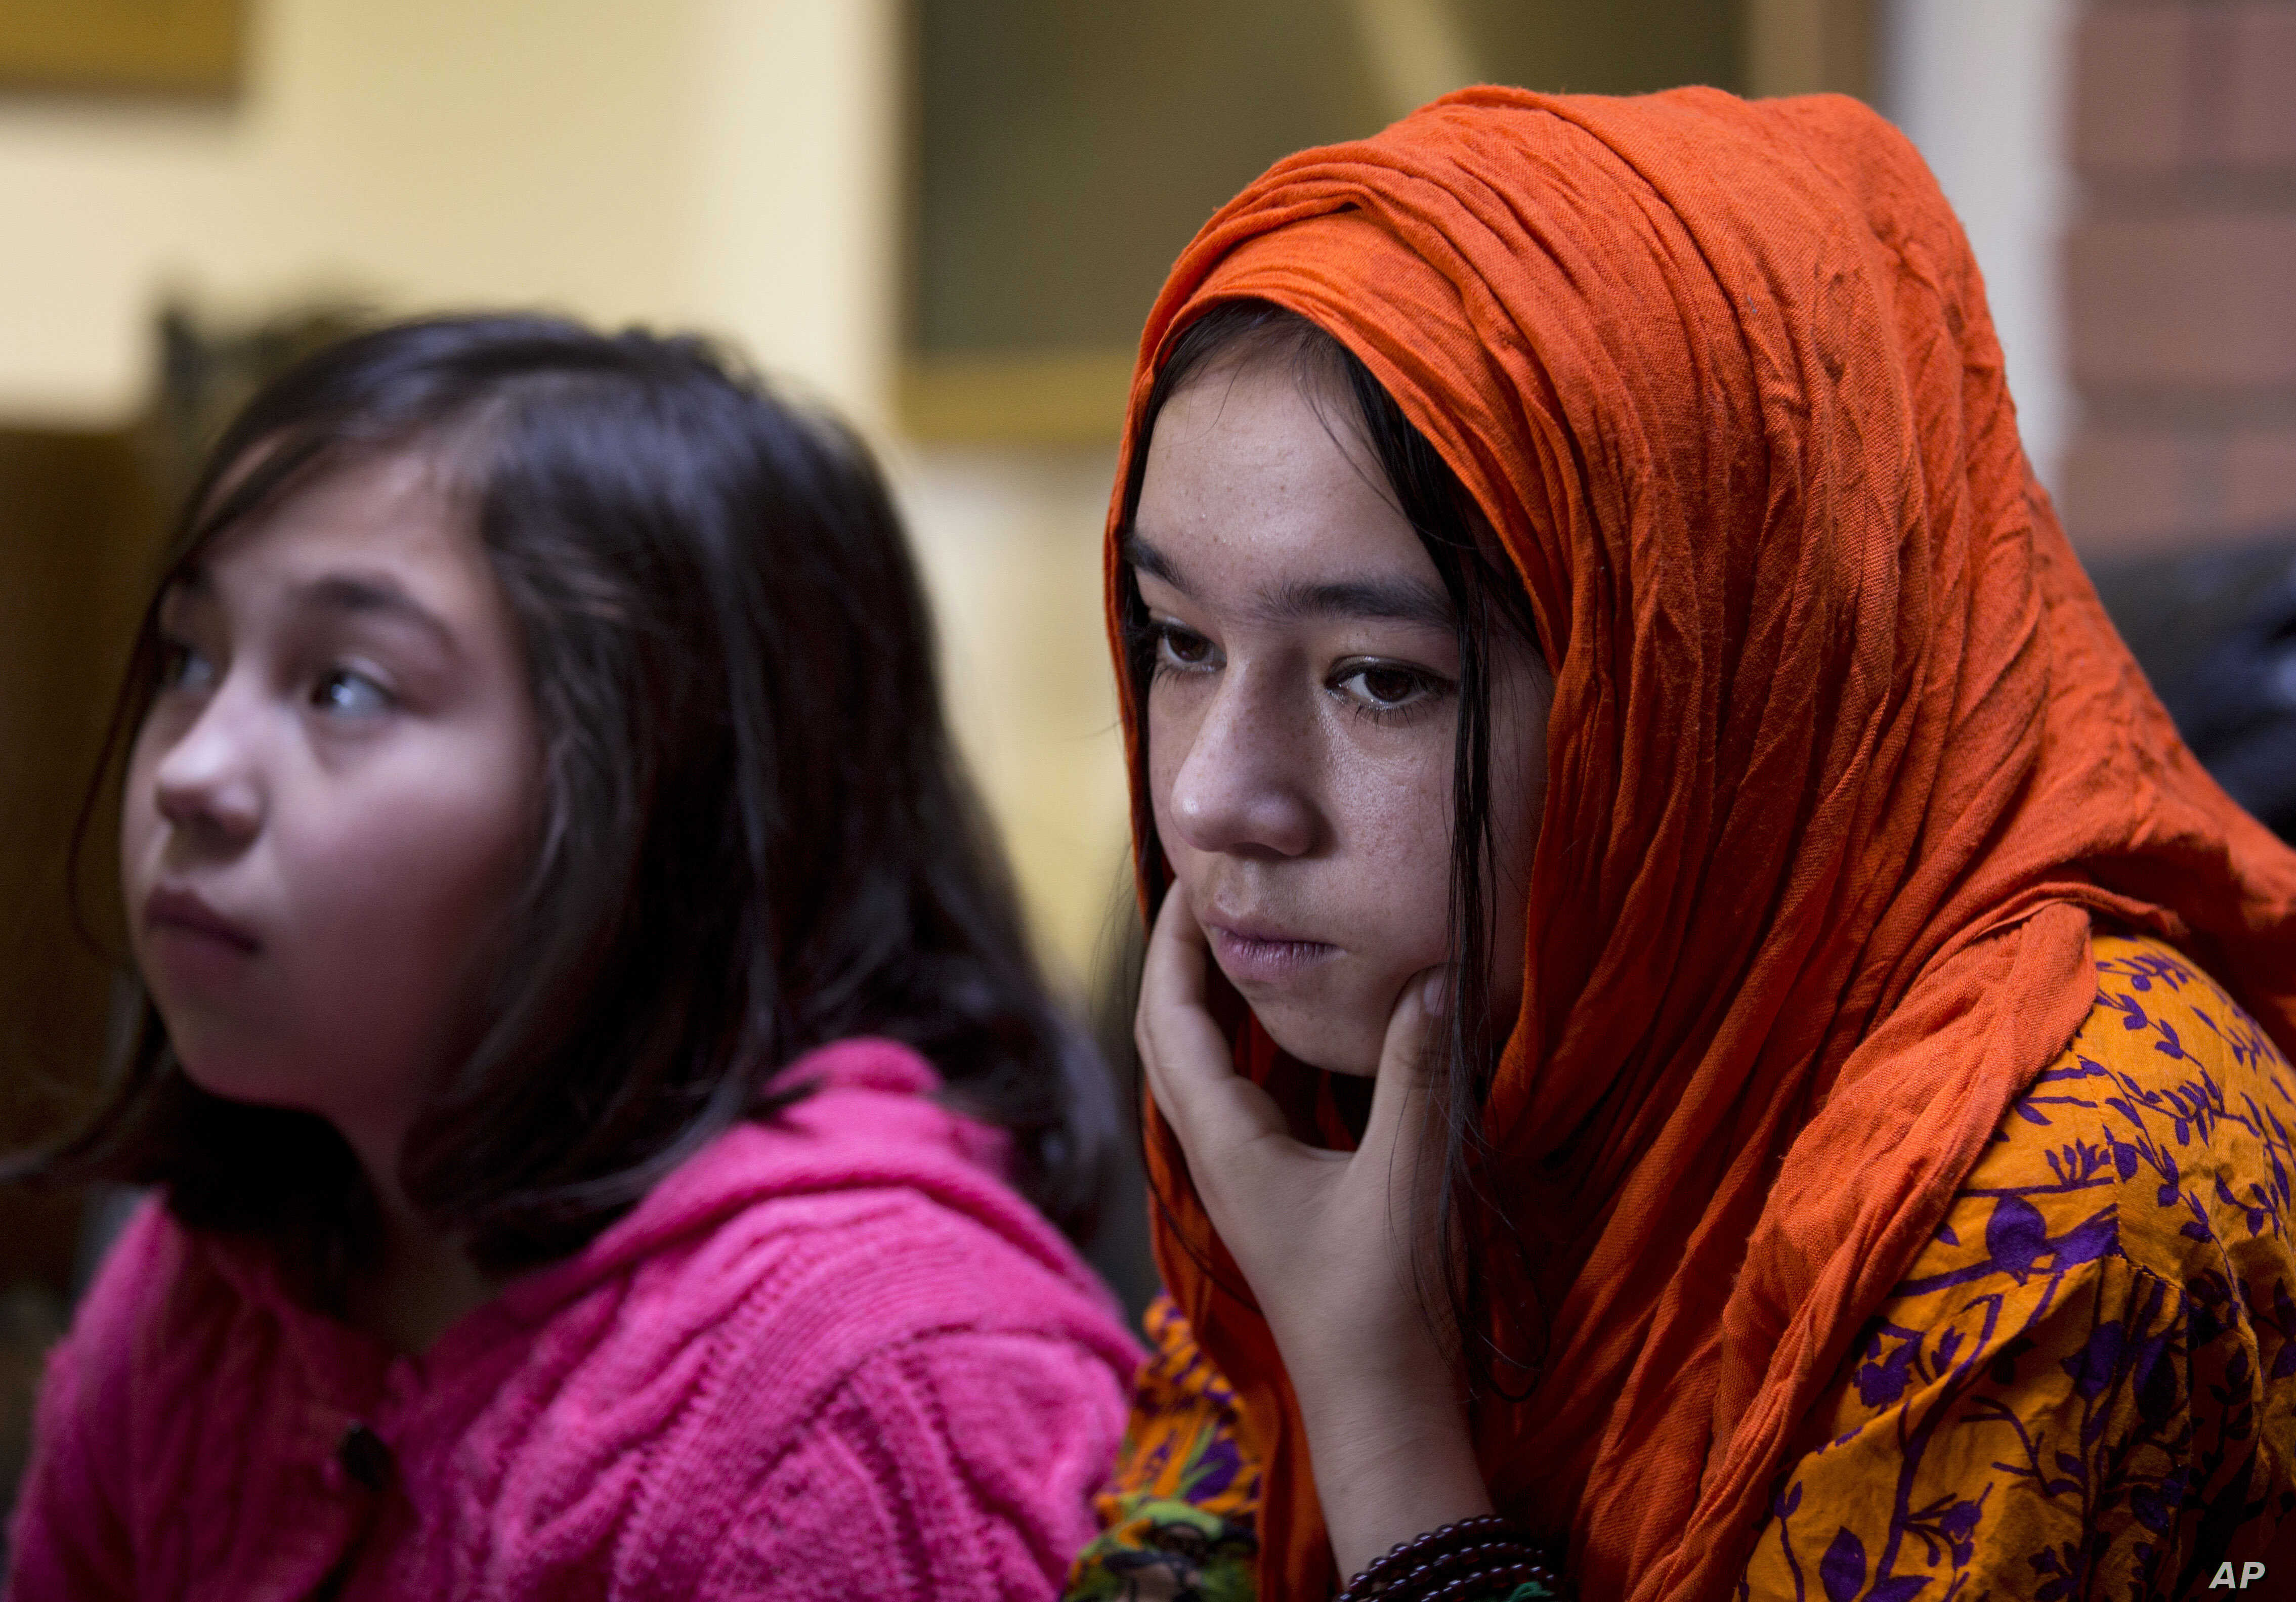 In this Nov. 29, 2018 photo, Shahnaz, 16, right, and Shakeela, 12, daughters of Mir Aman, speak to The Associated Press, in Islamabad, Pakistan.